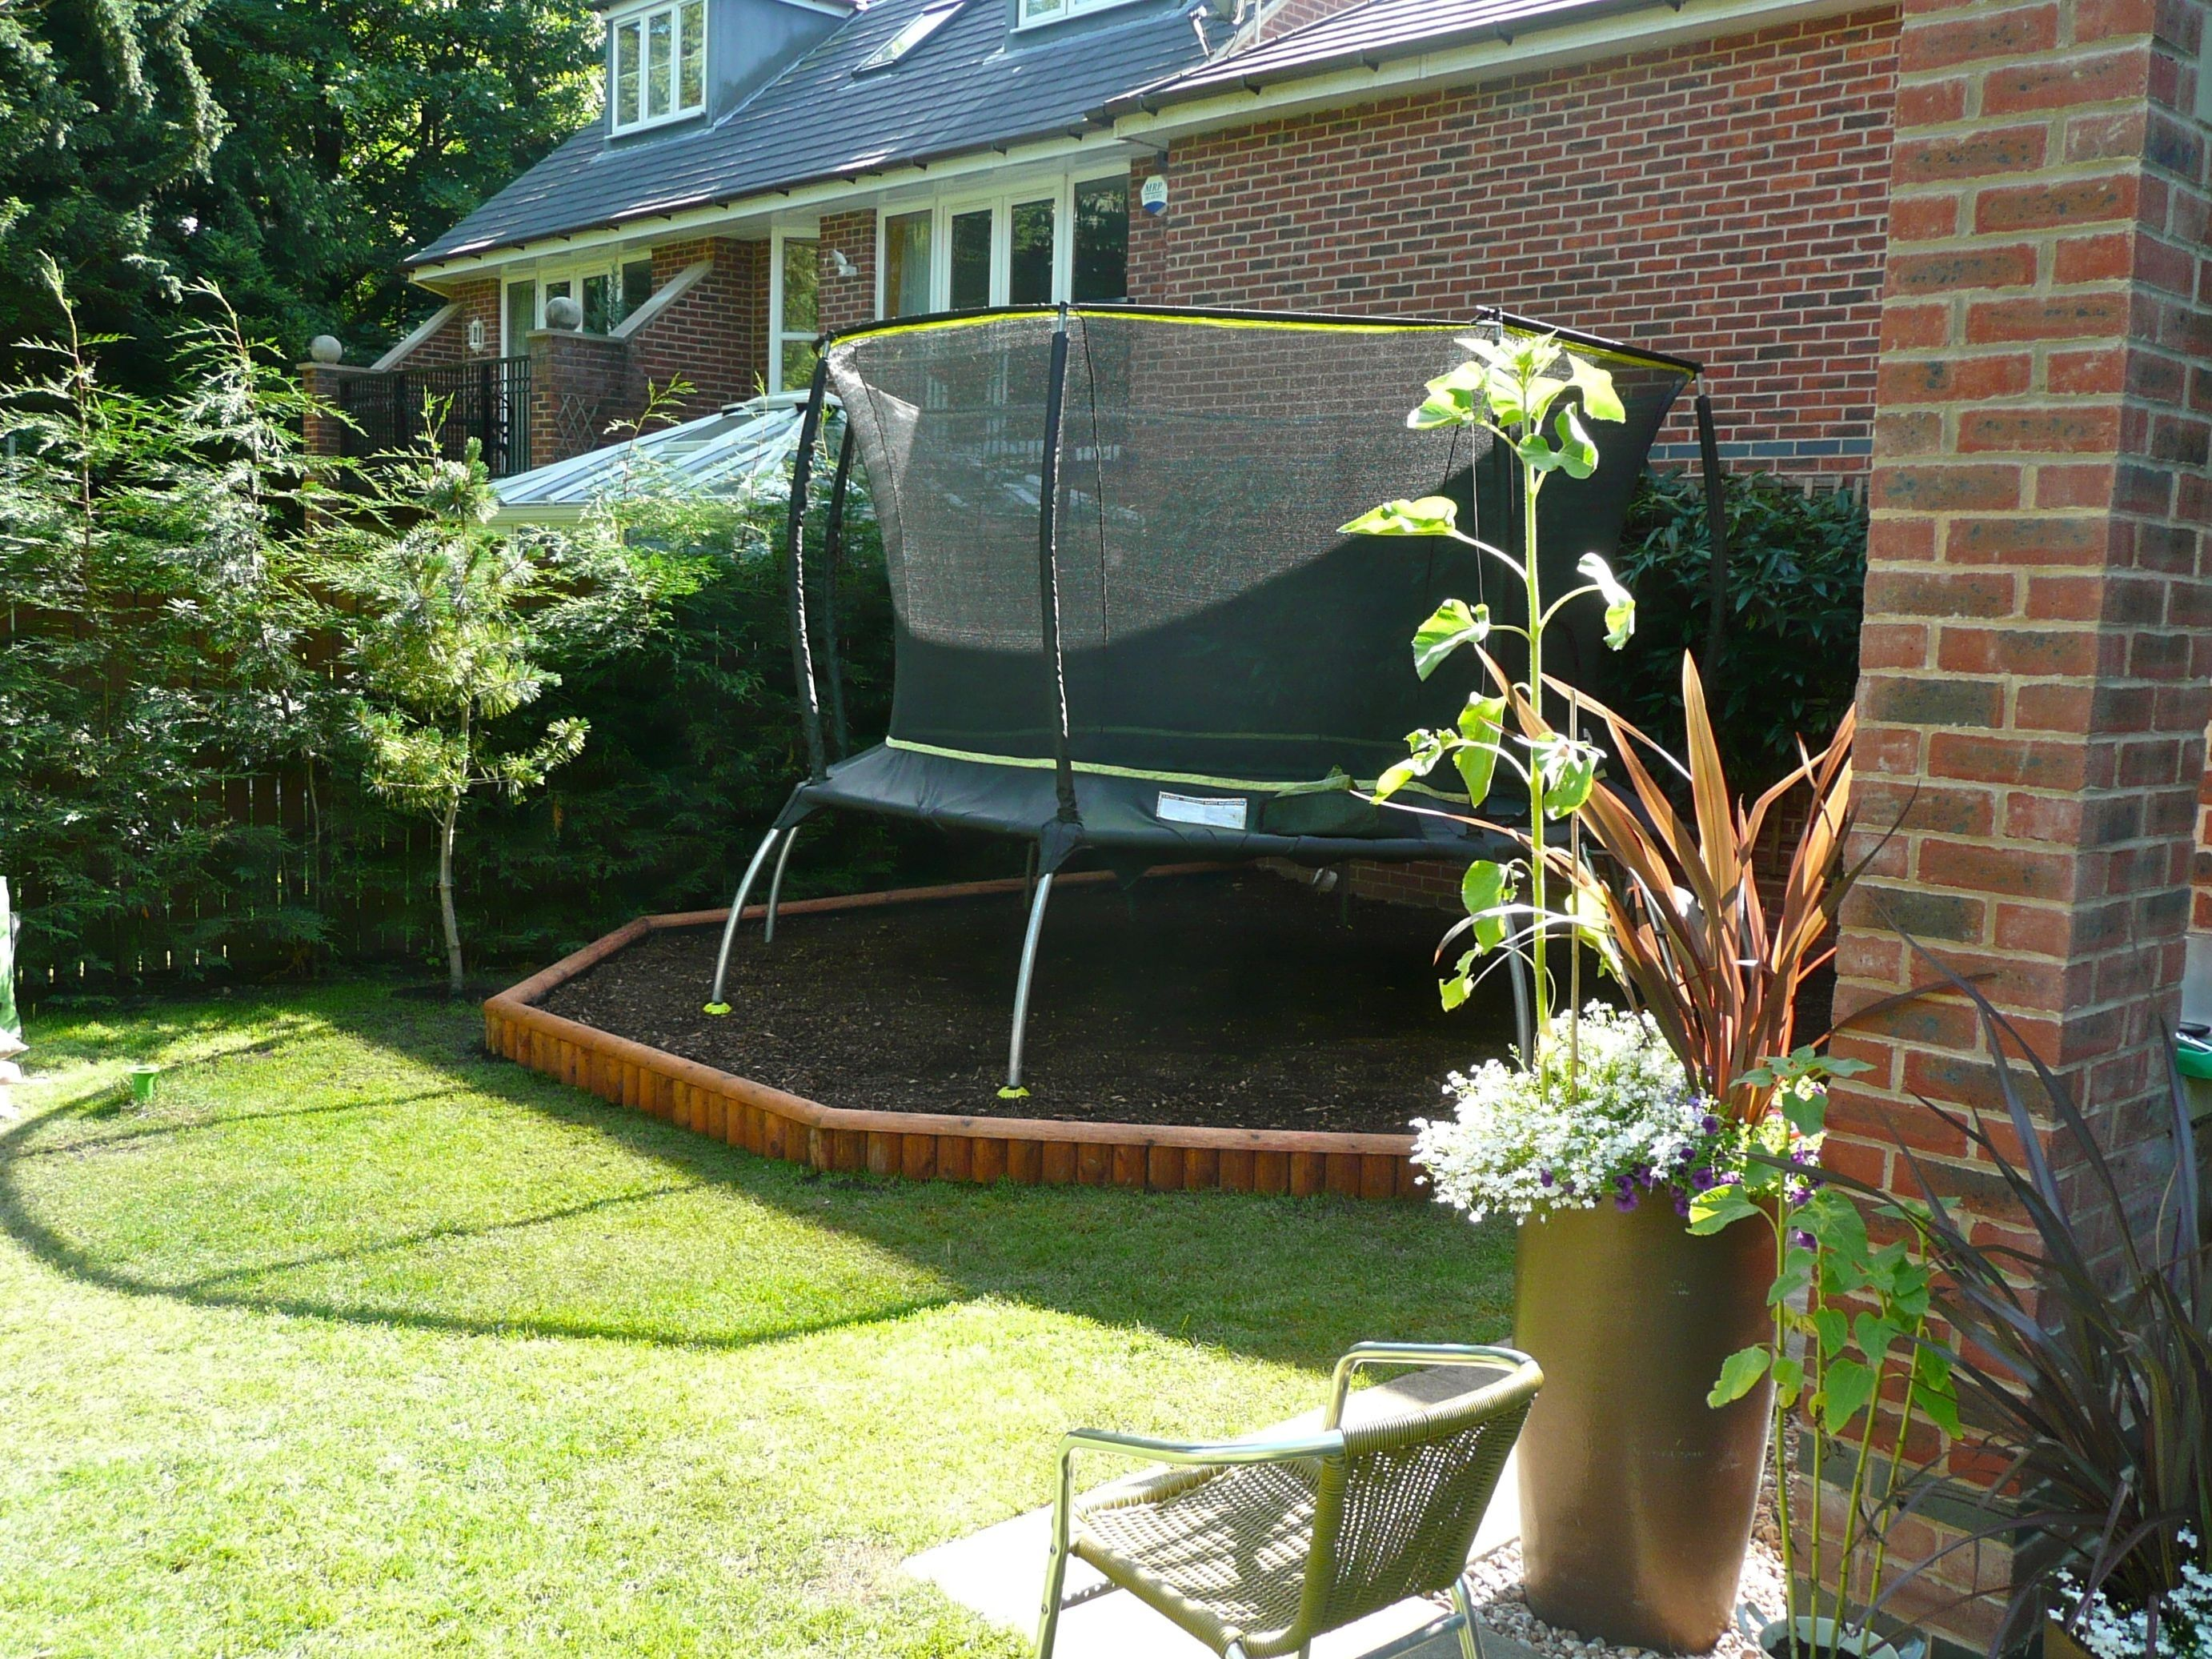 Inspirational Luxury Landscaping Ideas Under Trampoline Cn08e2 Https Canadagoosesvip Top Backyard Trampoline Garden Trampoline Backyard Ideas For Small Yards